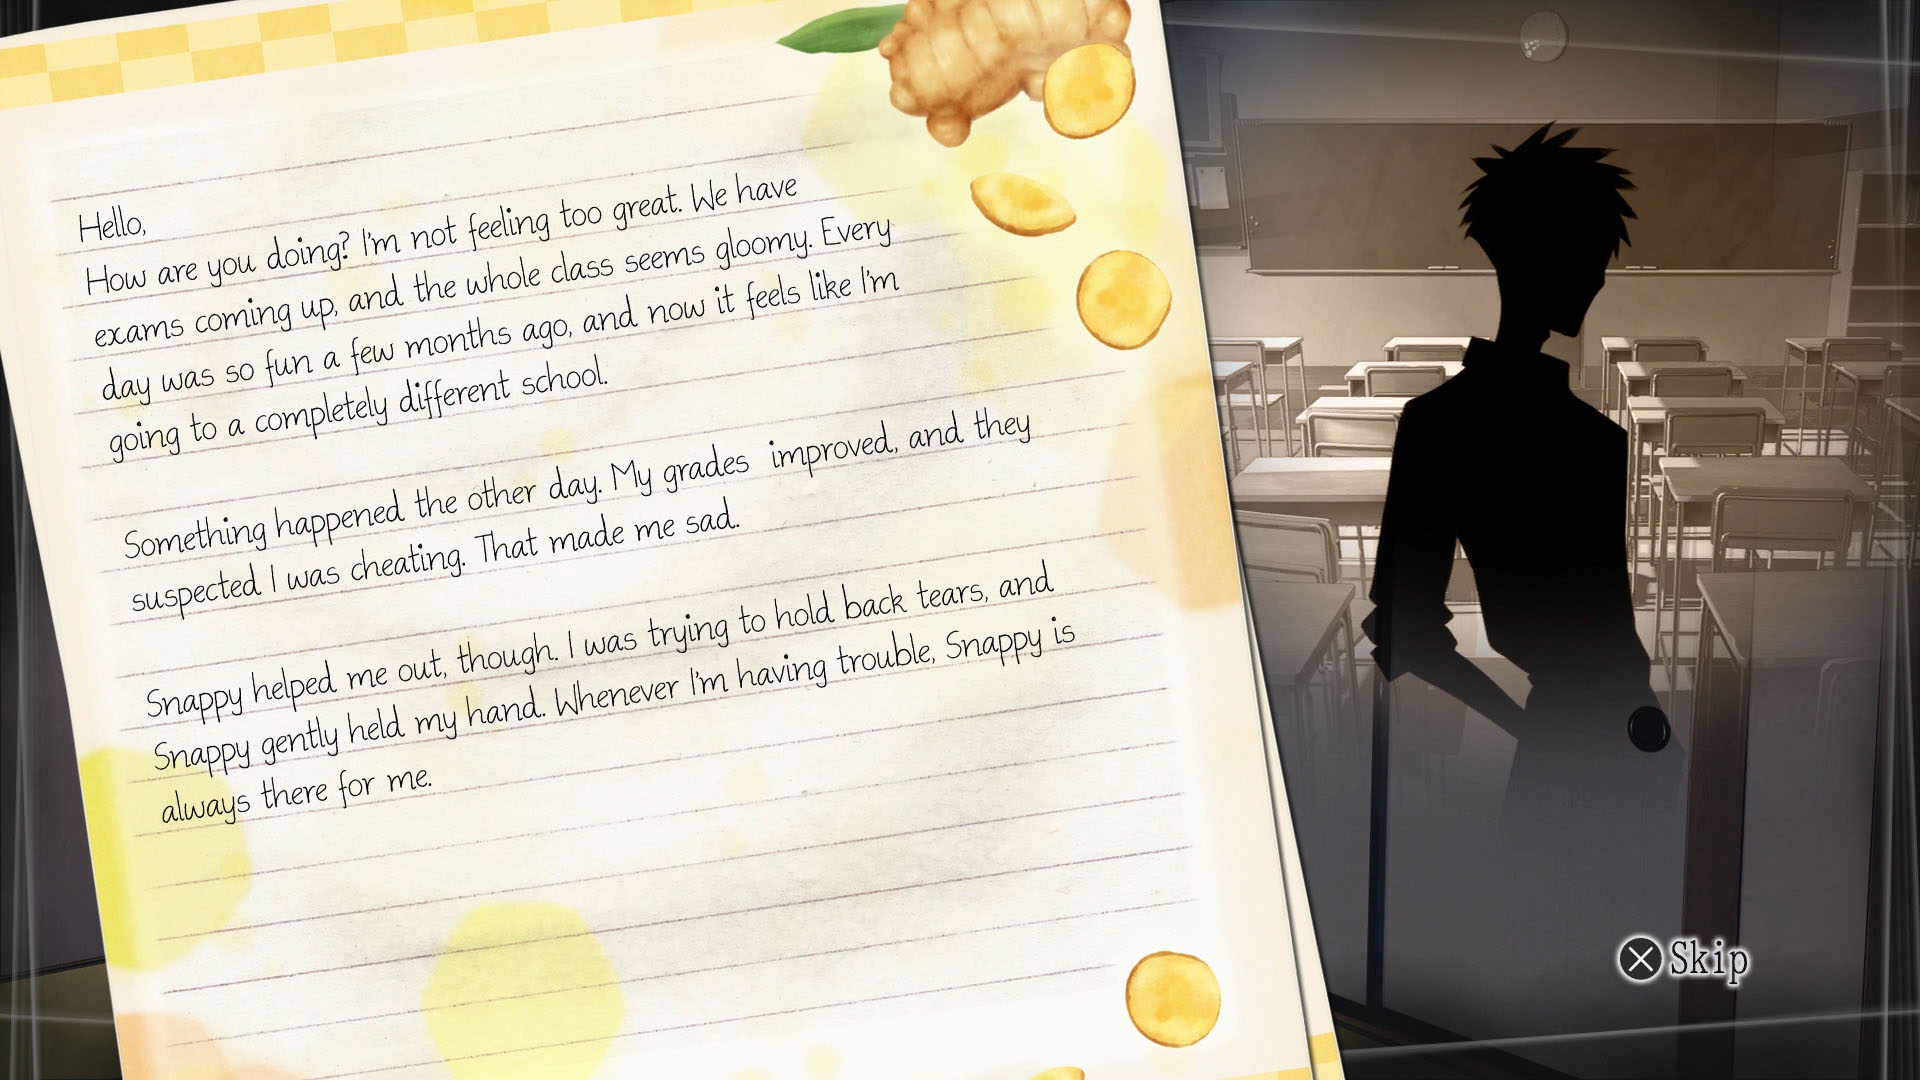 €�those Looking For A Phoenix Wrightstyle Experience On Ps4 Should Look No  Further €� Root Letter Scratches The Itch Whilst Also Presenting A More Pelling